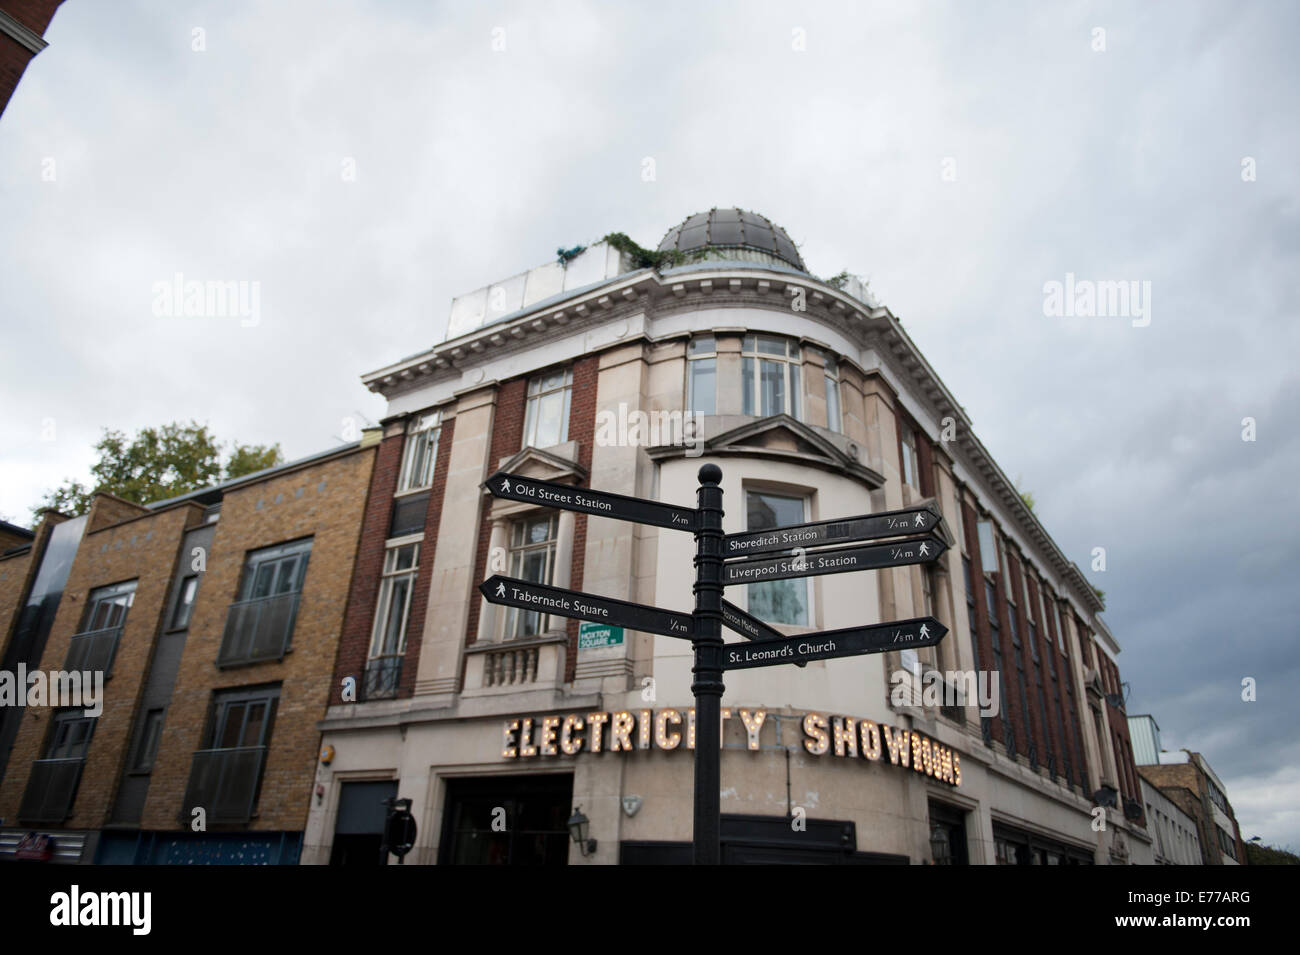 The Electricity Showrooms in Shoreditch with arrows to other nearby areas of interest. - Stock Image